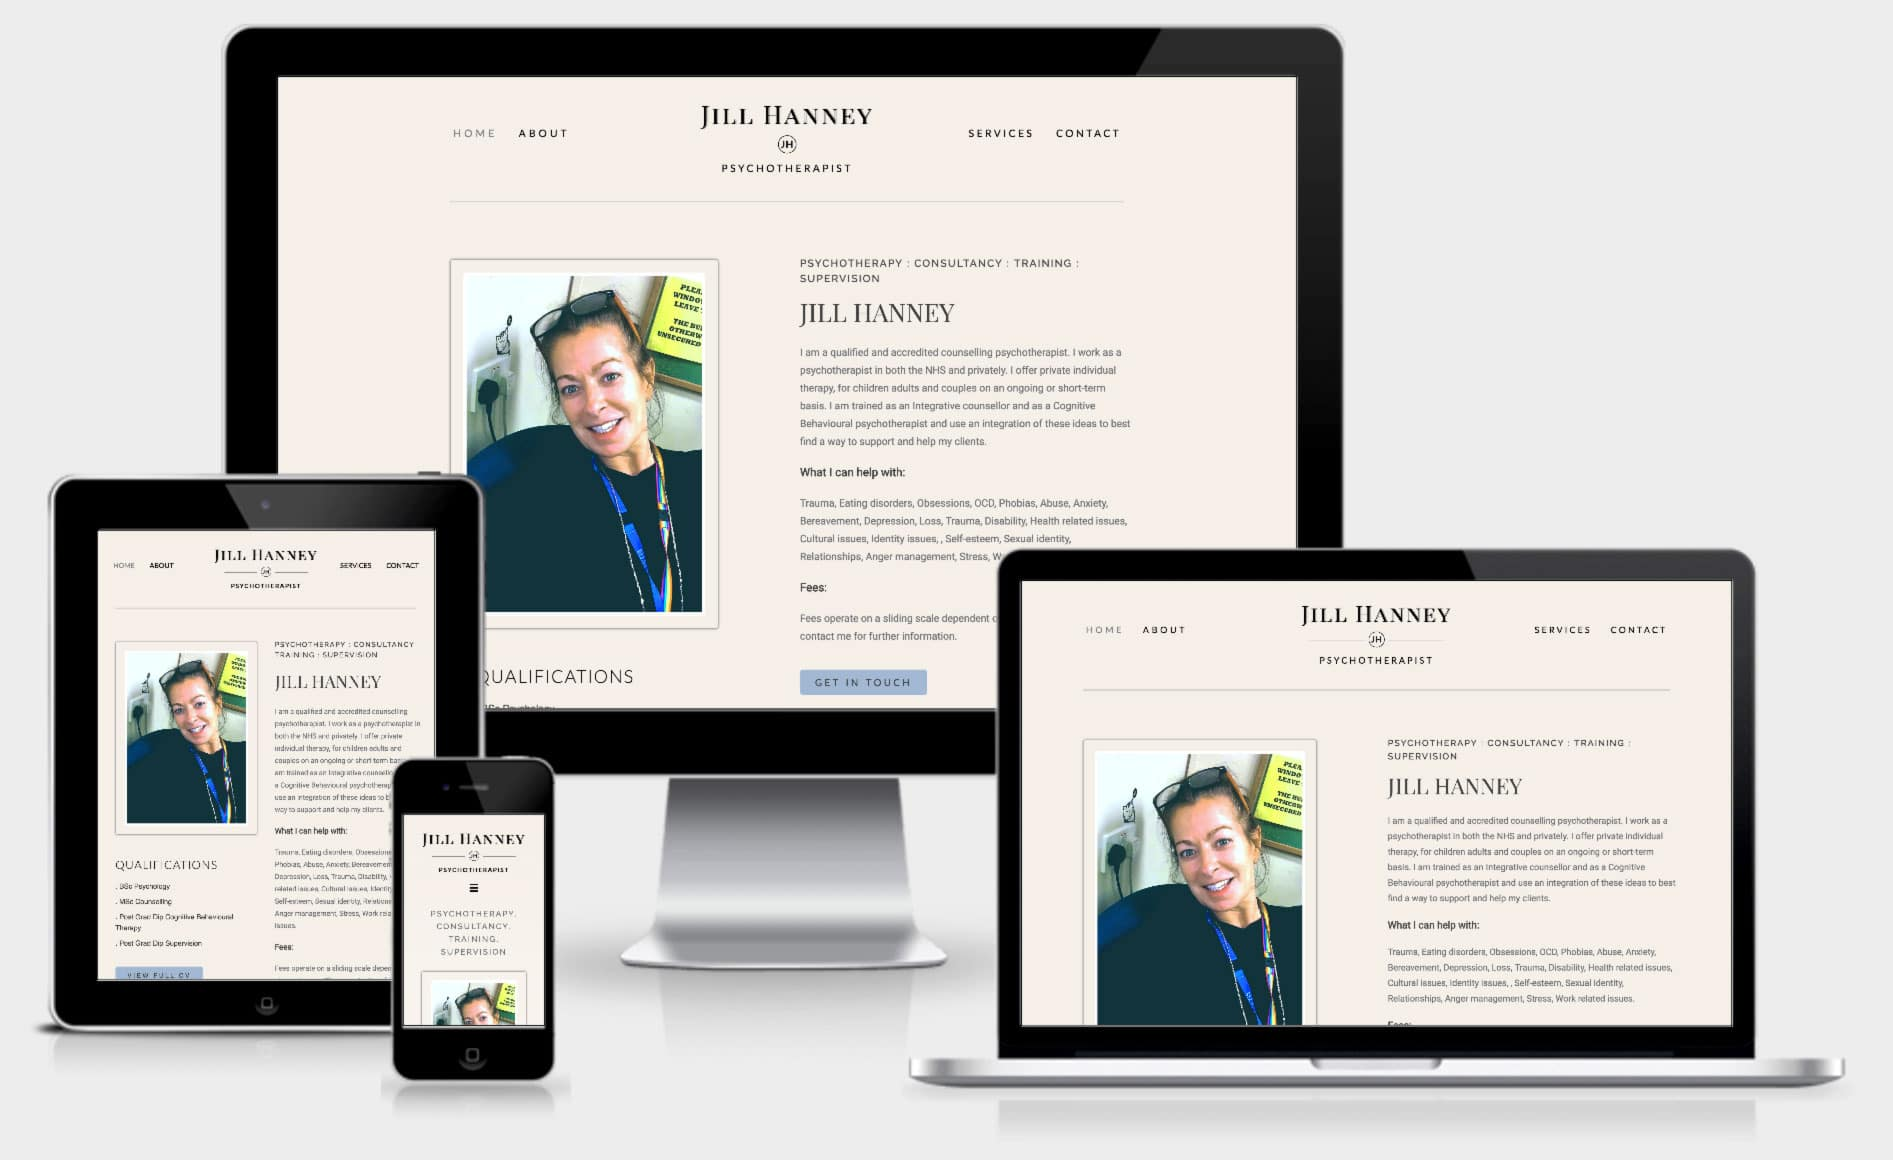 JH-psychotherapy-mpower-webdesign-template